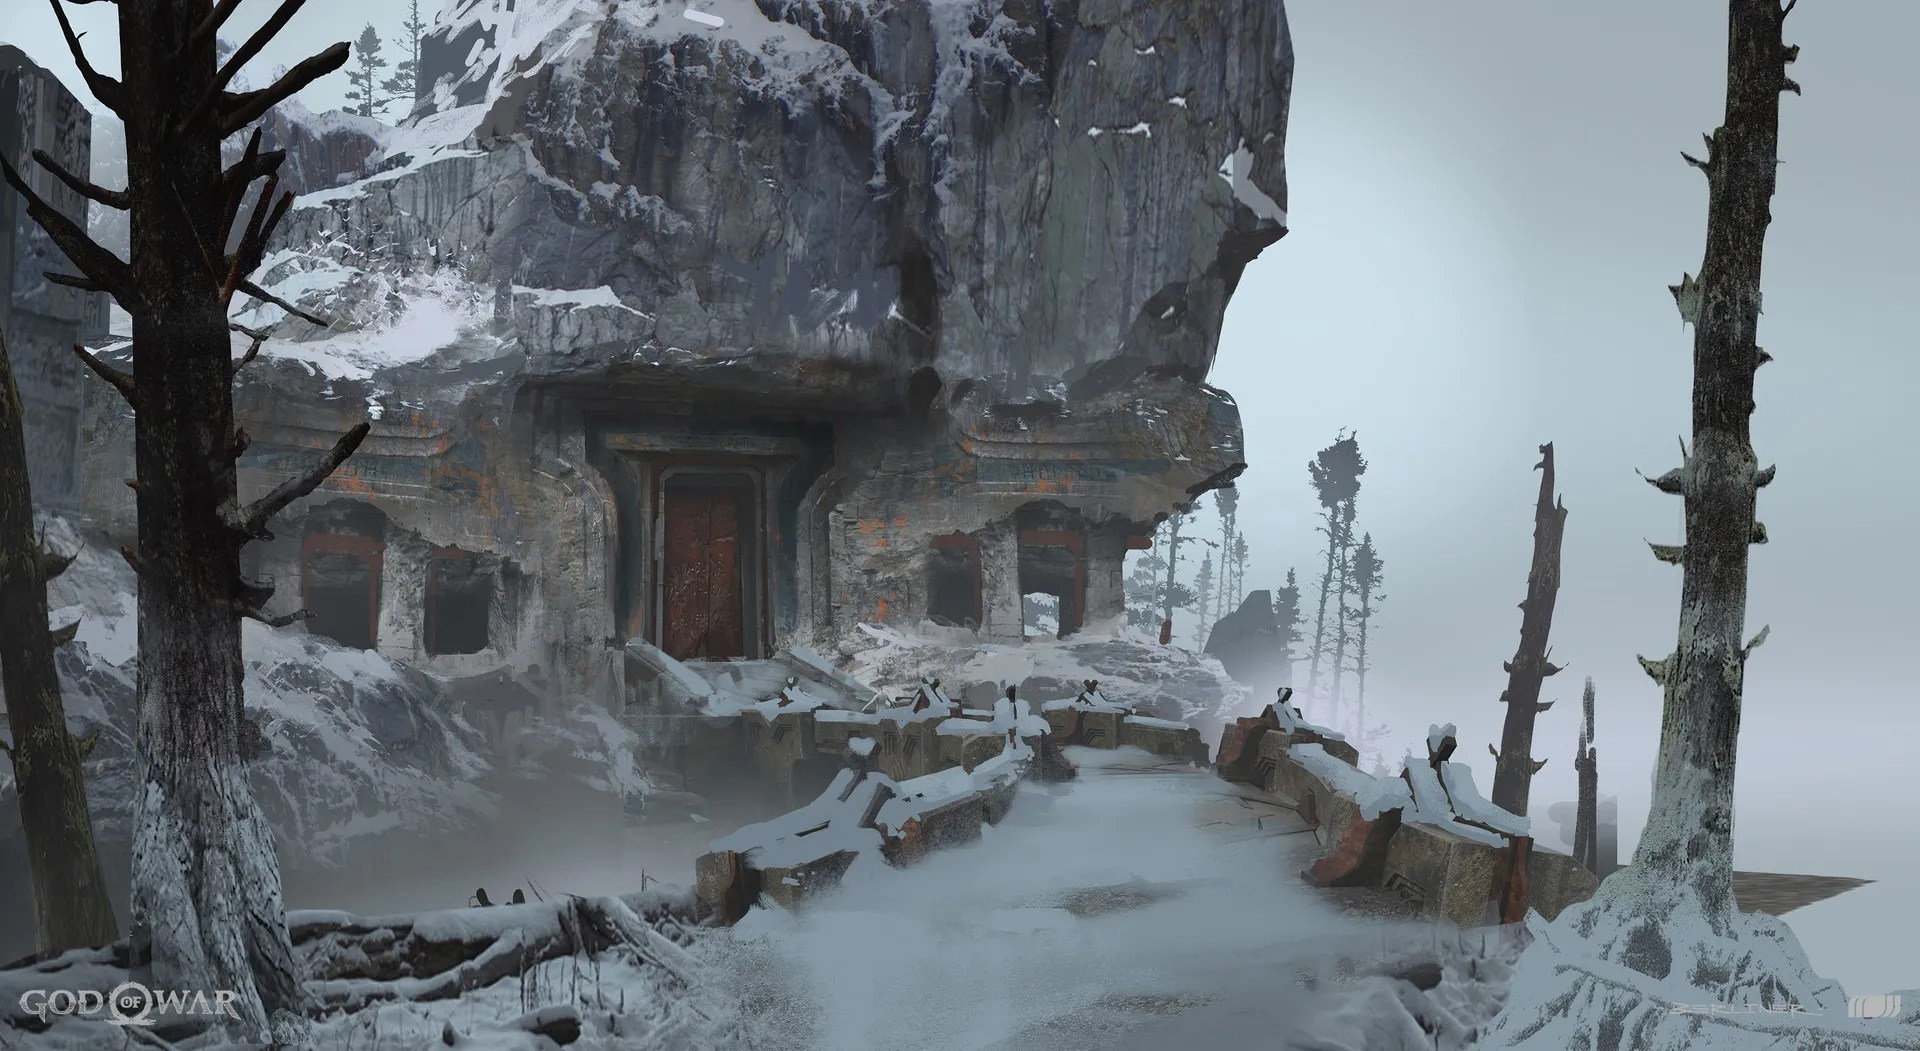 God of War Concept Art by Luke Berliner